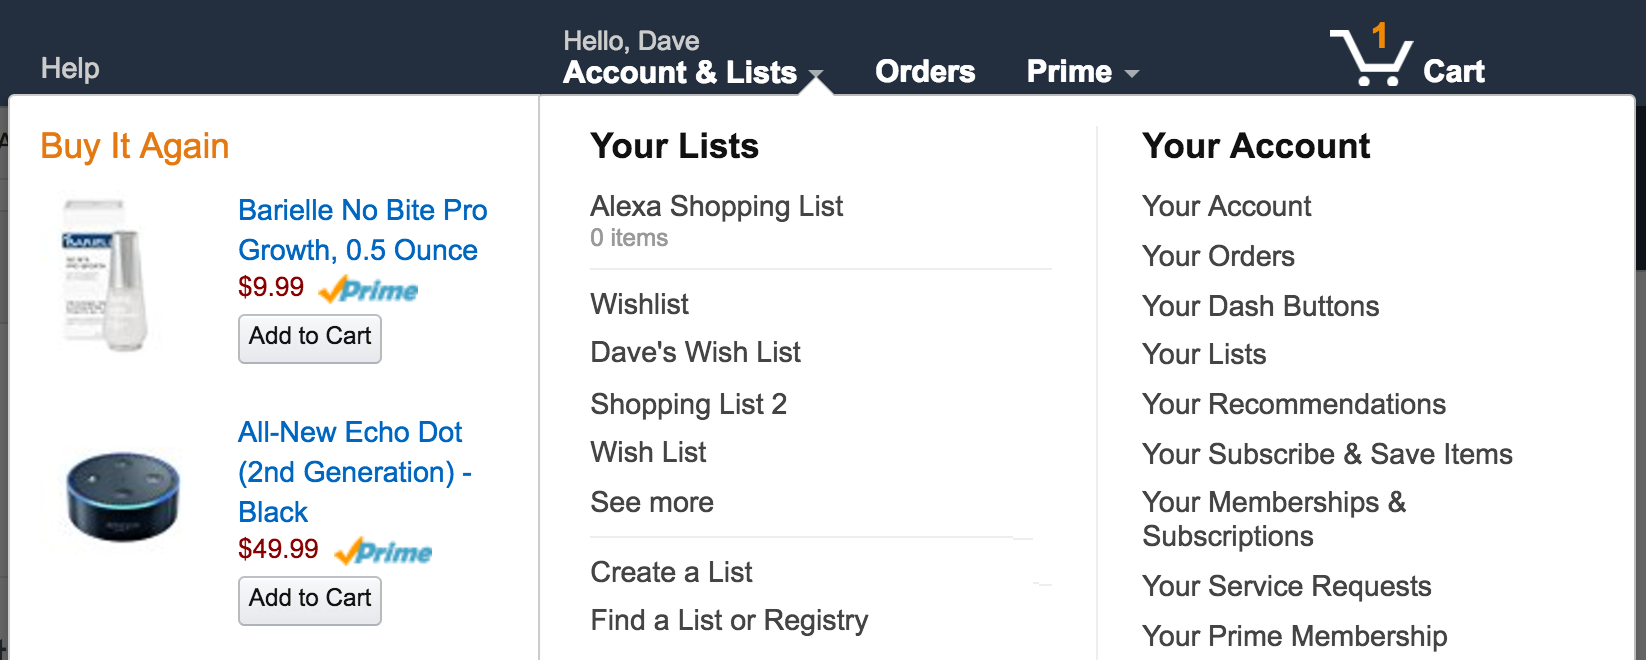 How to Remove Amazon.com Wish Lists? - Ask Dave Taylor